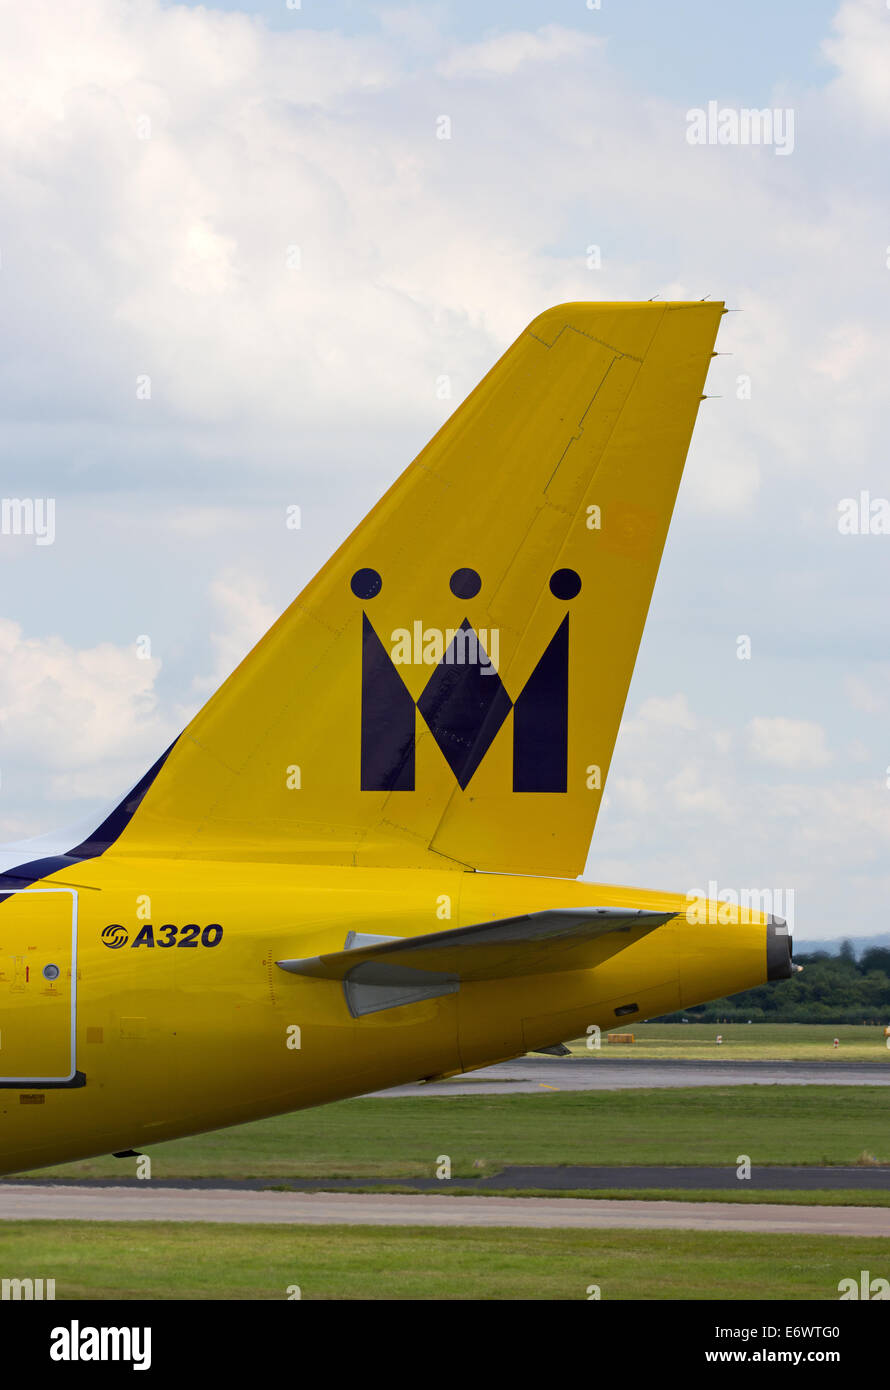 Tailplane of Monarch Airlines Airbus A320 - Stock Image